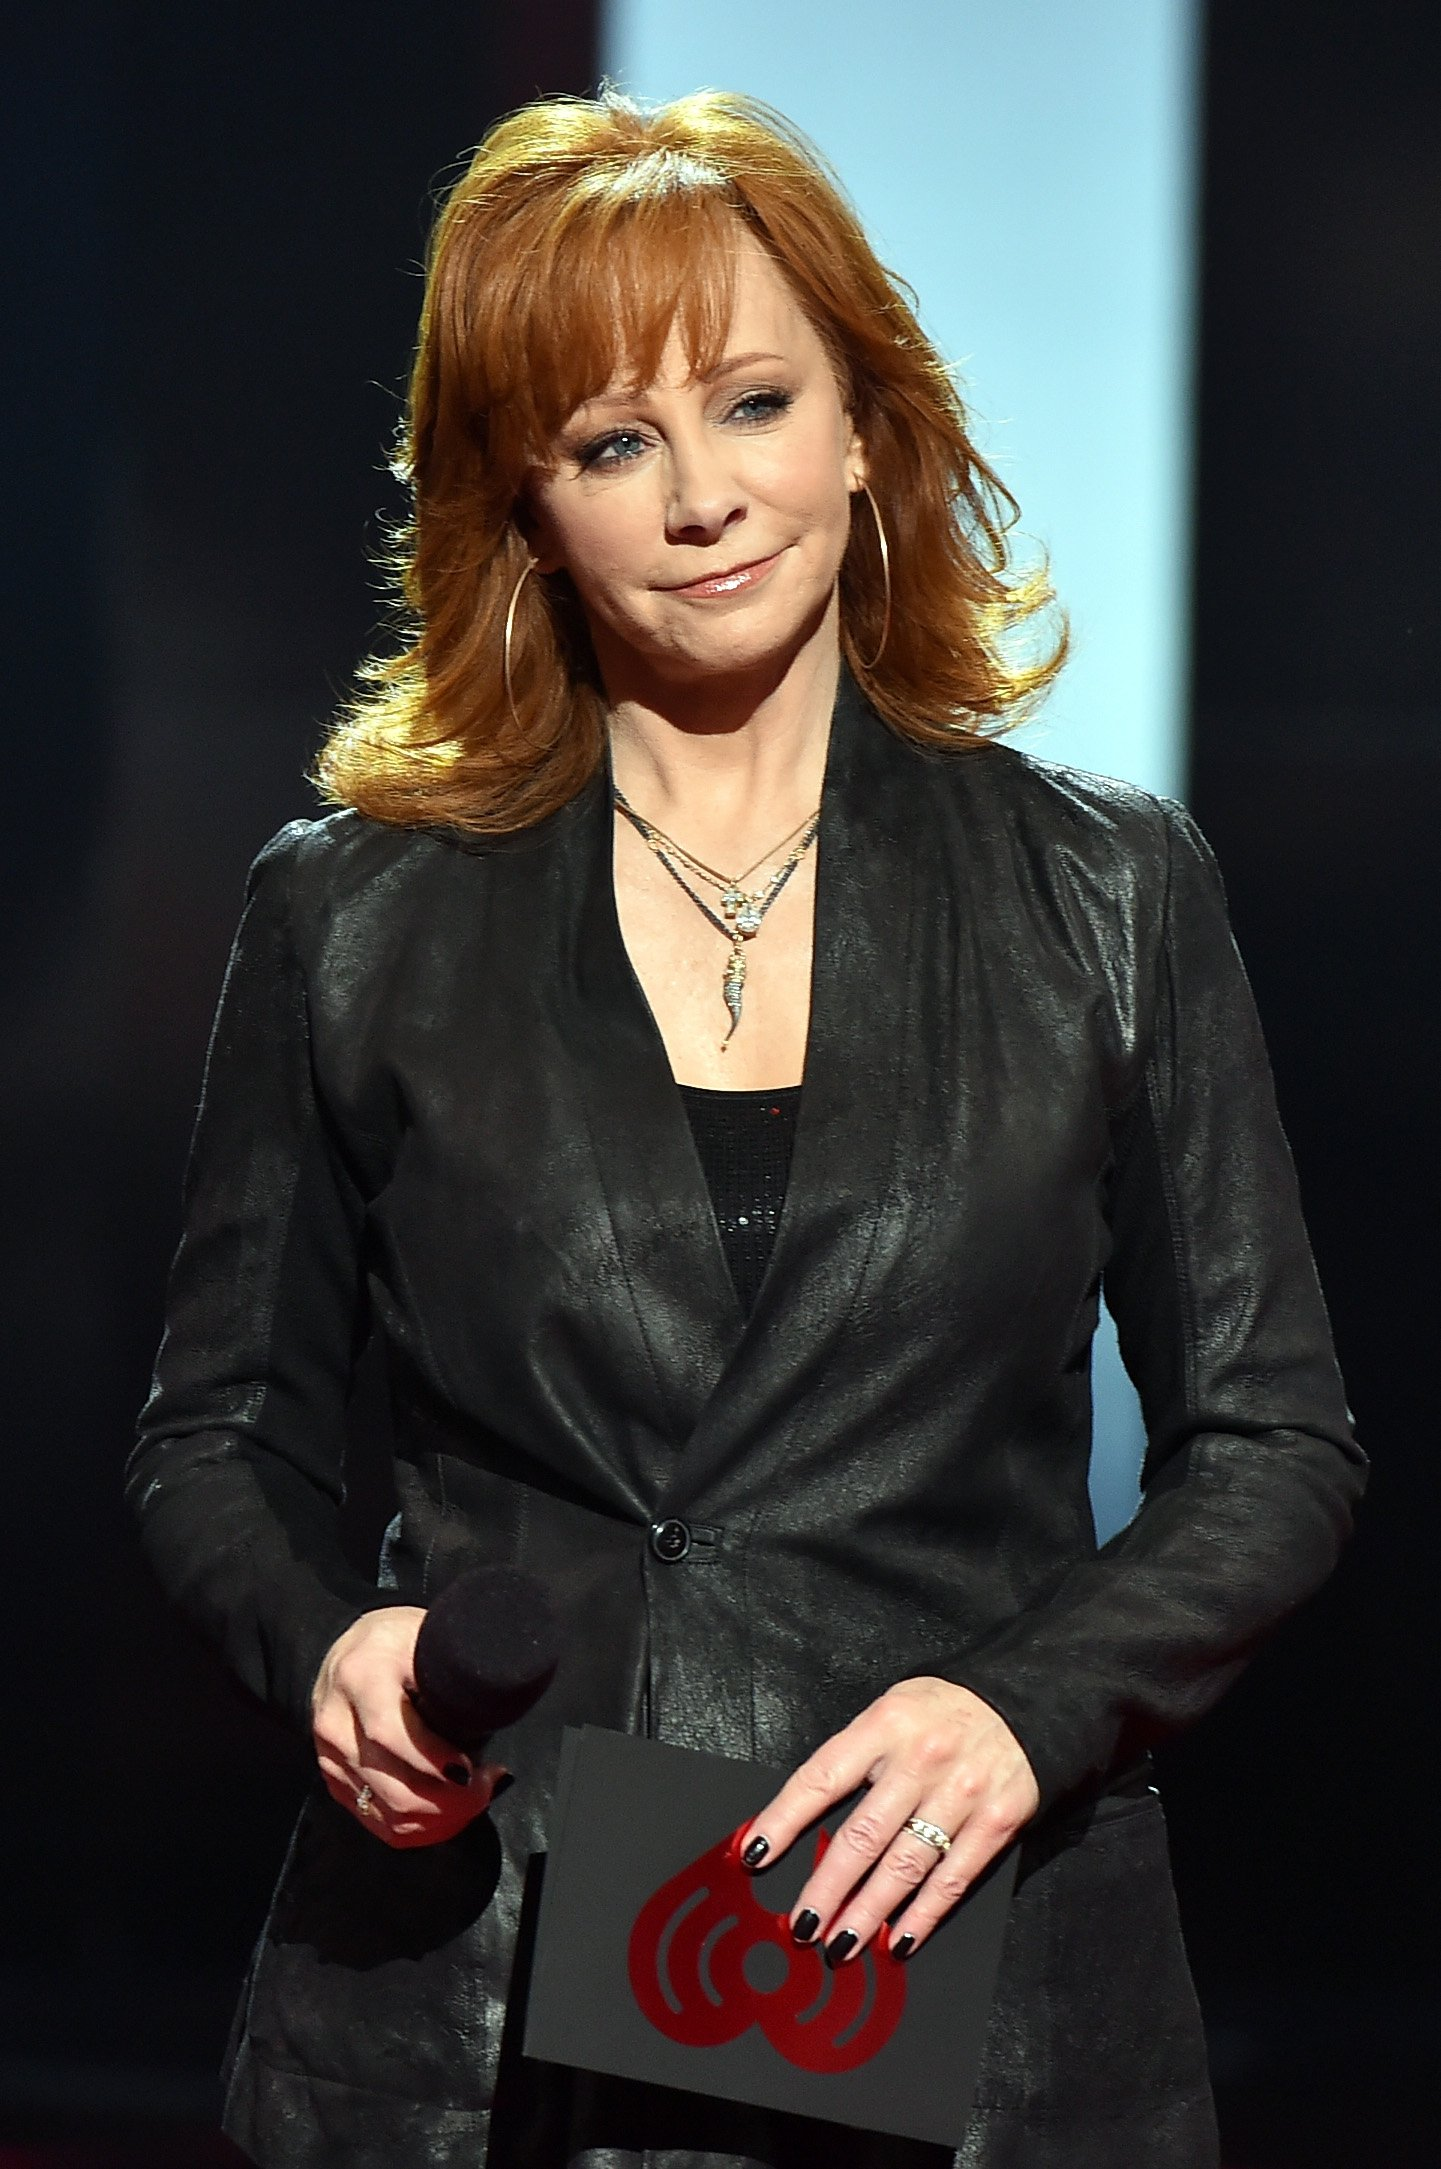 Reba McEntire speaks onstage during the 2015 iHeartRadio Music Awards in Los Angeles | Photo: Getty Images